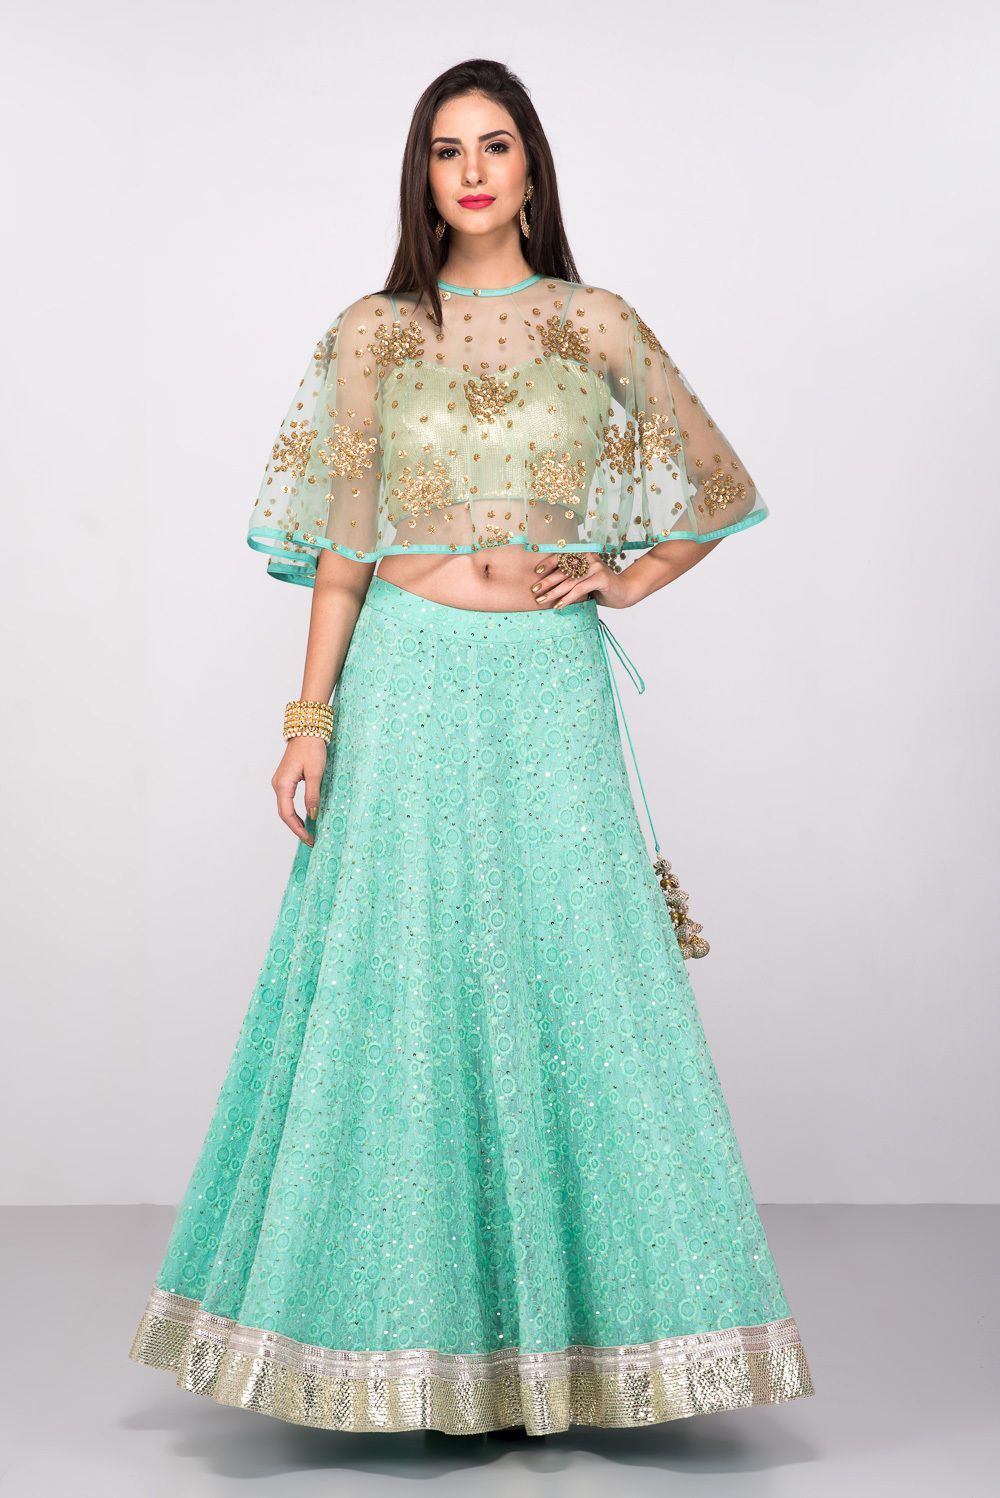 e212923c0a20b AVNNI KAPUR Aqua Blue Cape Style Crop Top And Skirt in 2019